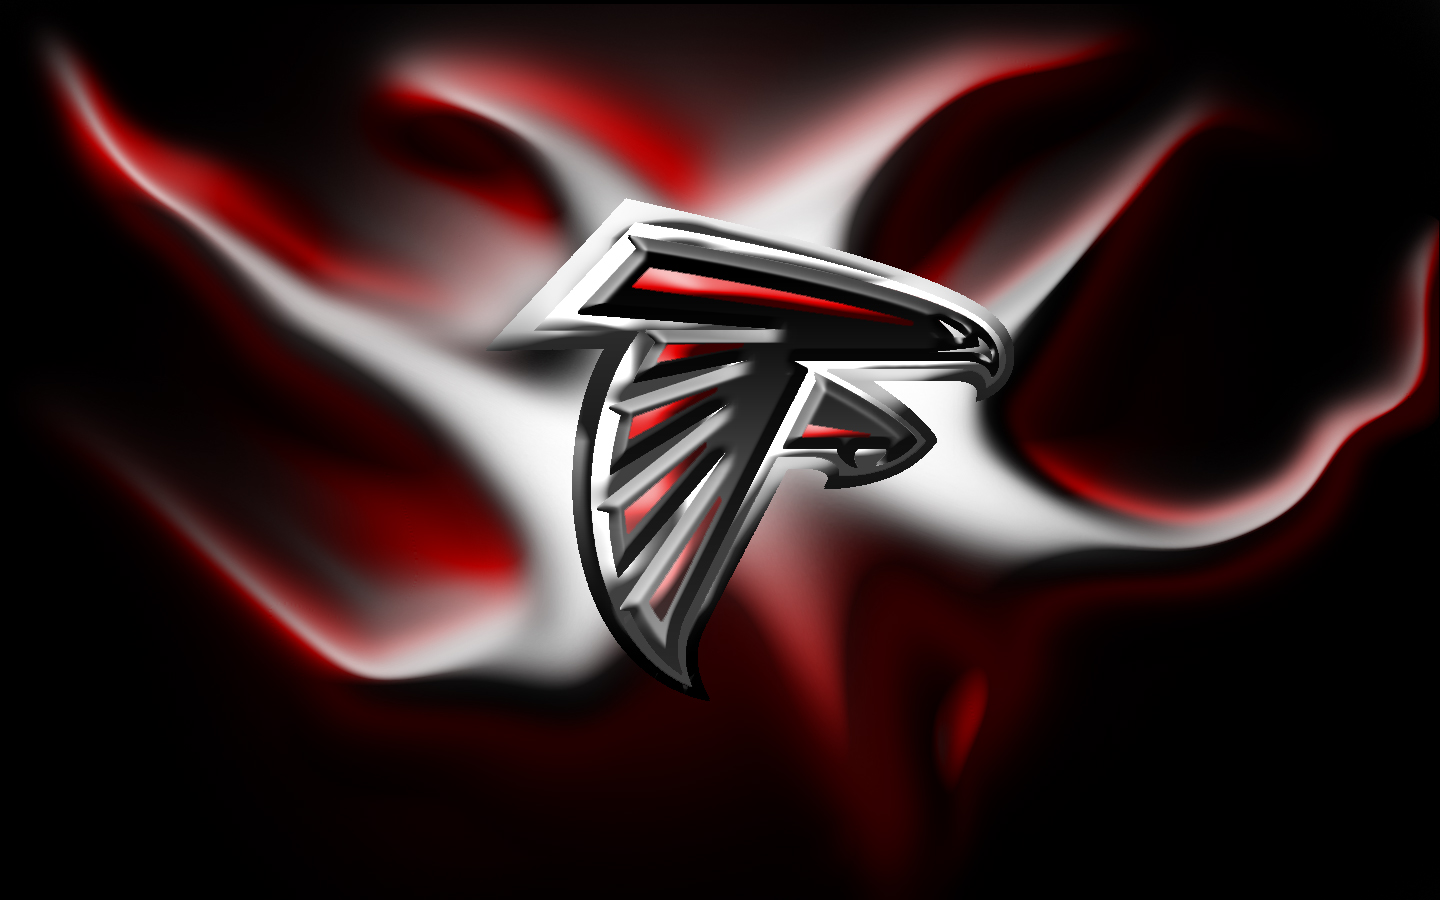 Atlanta Falcons news scores schedules rosters photos and features from The Atlanta JournalConstitution